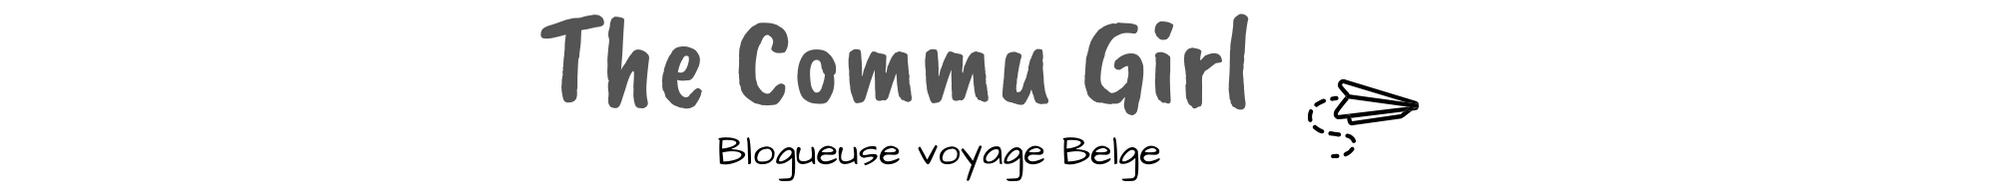 The Commu Girl | Blog voyage belge